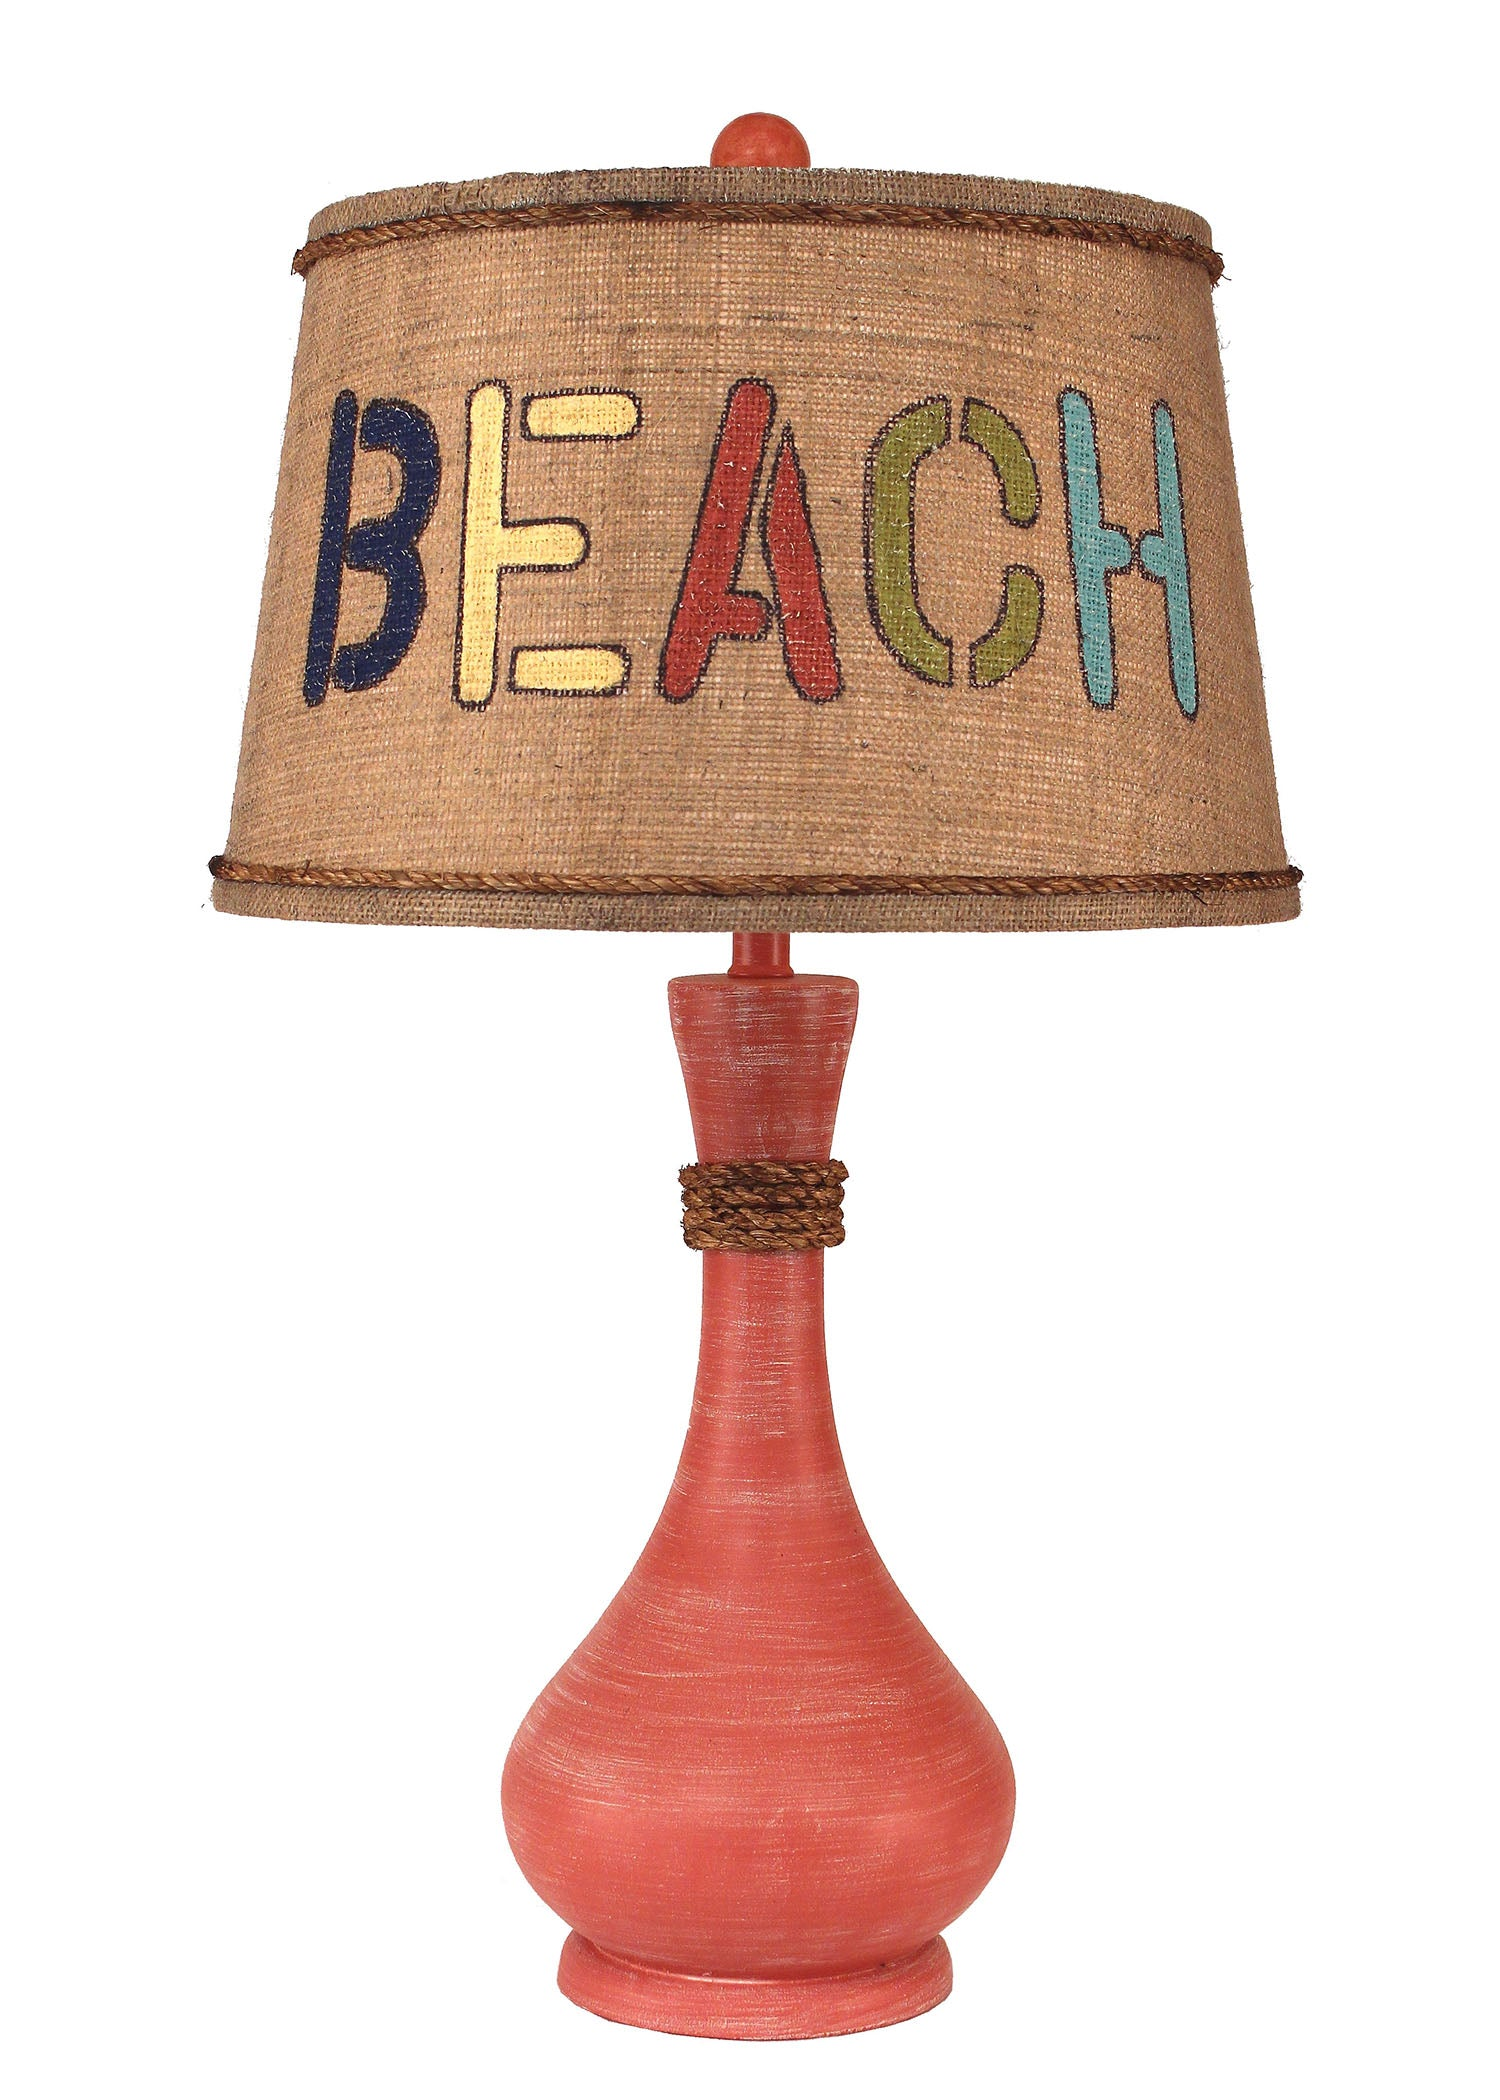 "Weathered Coral ""BEACH"" Table Lamp - Coast Lamp Shop"